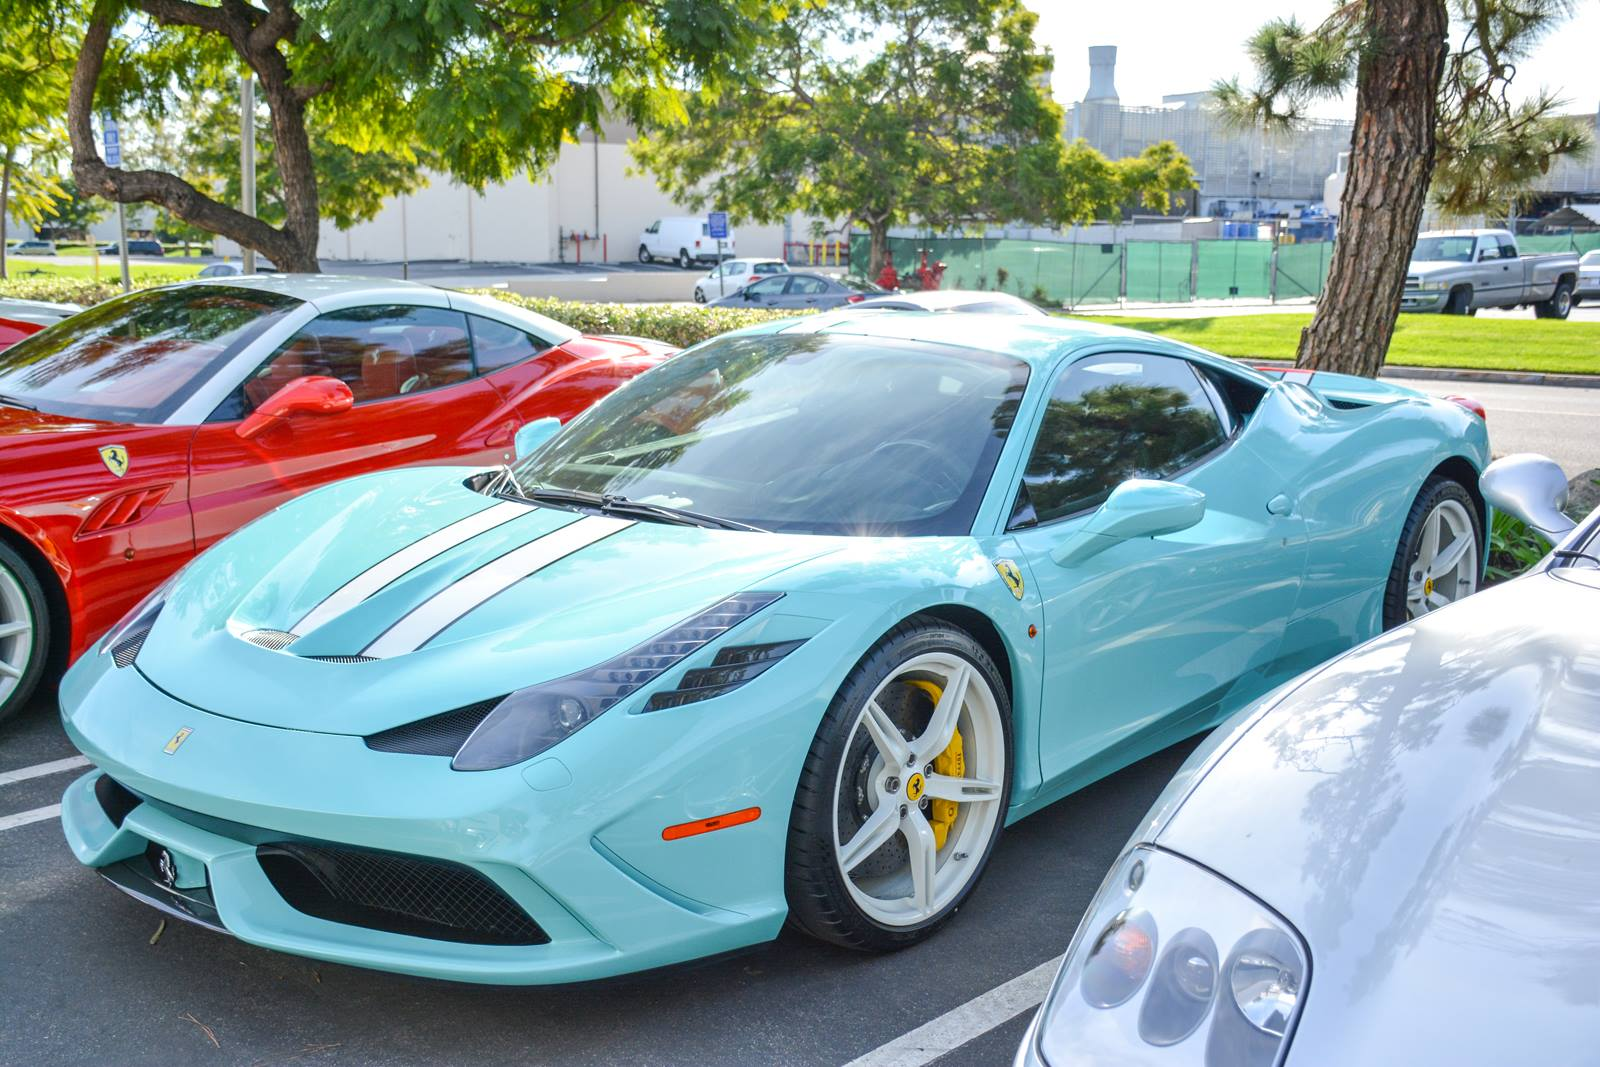 2015 ferrari 458 speciale front photo tiffany blue paint size 1600 - Ferrari 458 Blue And White